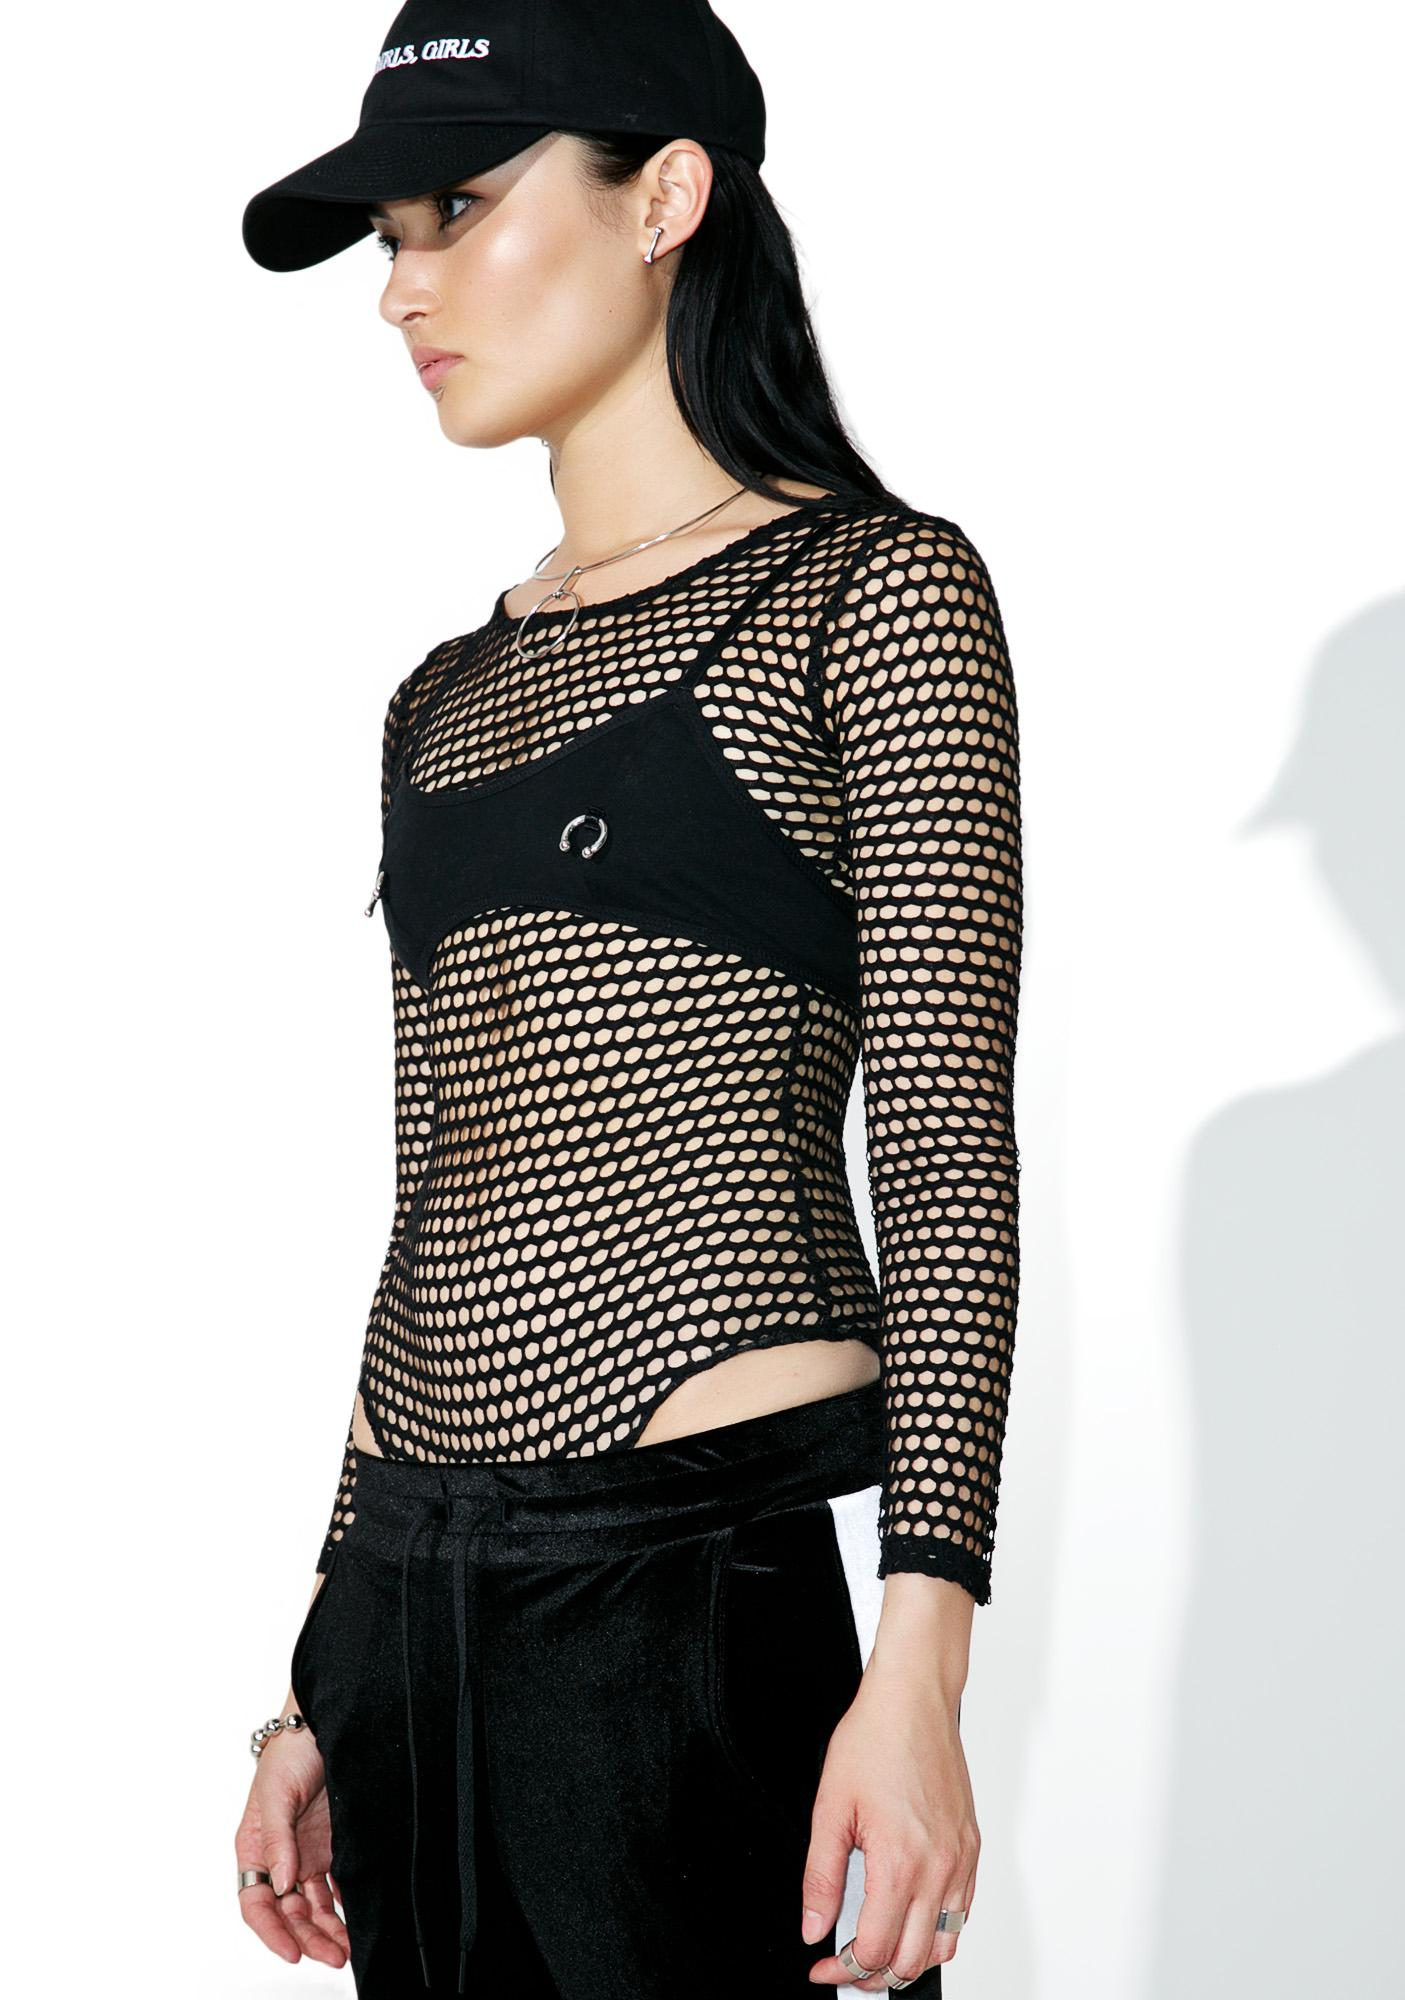 Risky Business Mesh Bodysuit